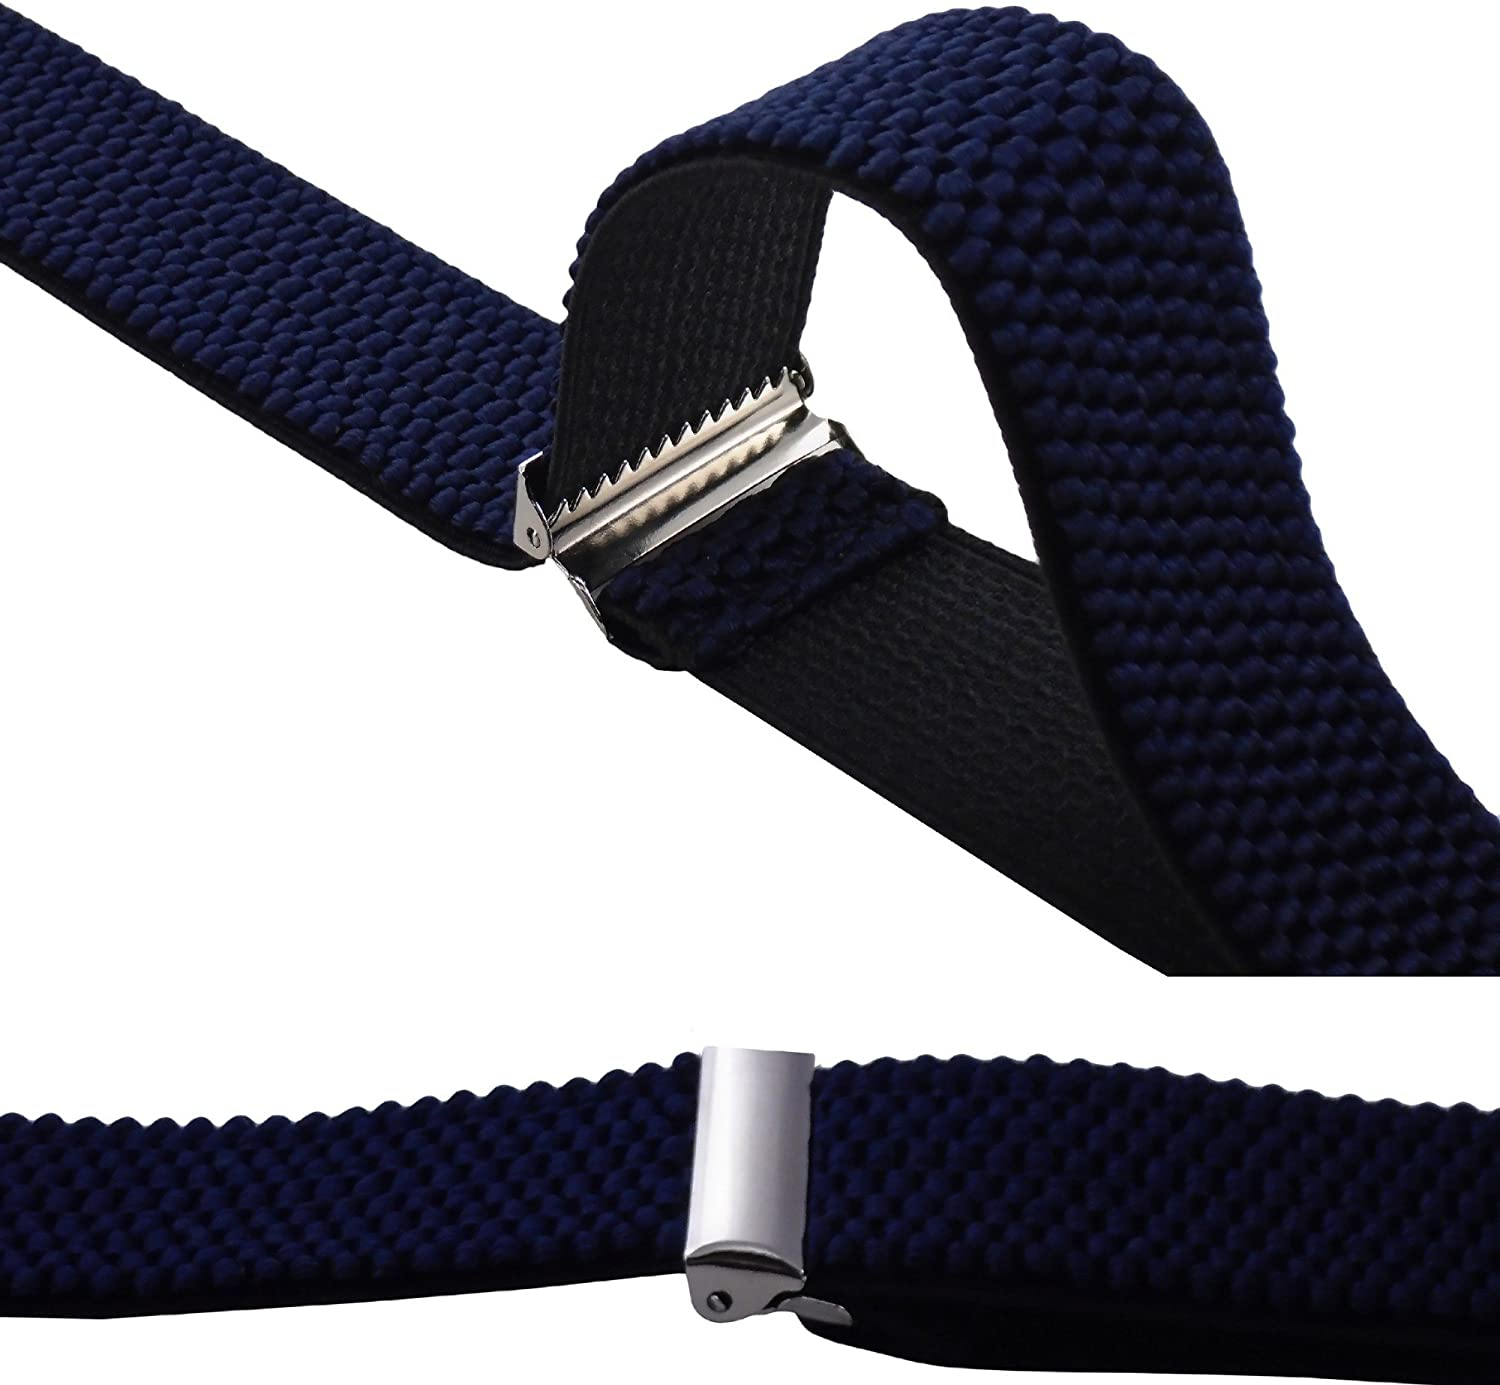 Decalen Mens Braces Very Strong Clips One Size Fits All X Style Heavy Duty Suspenders